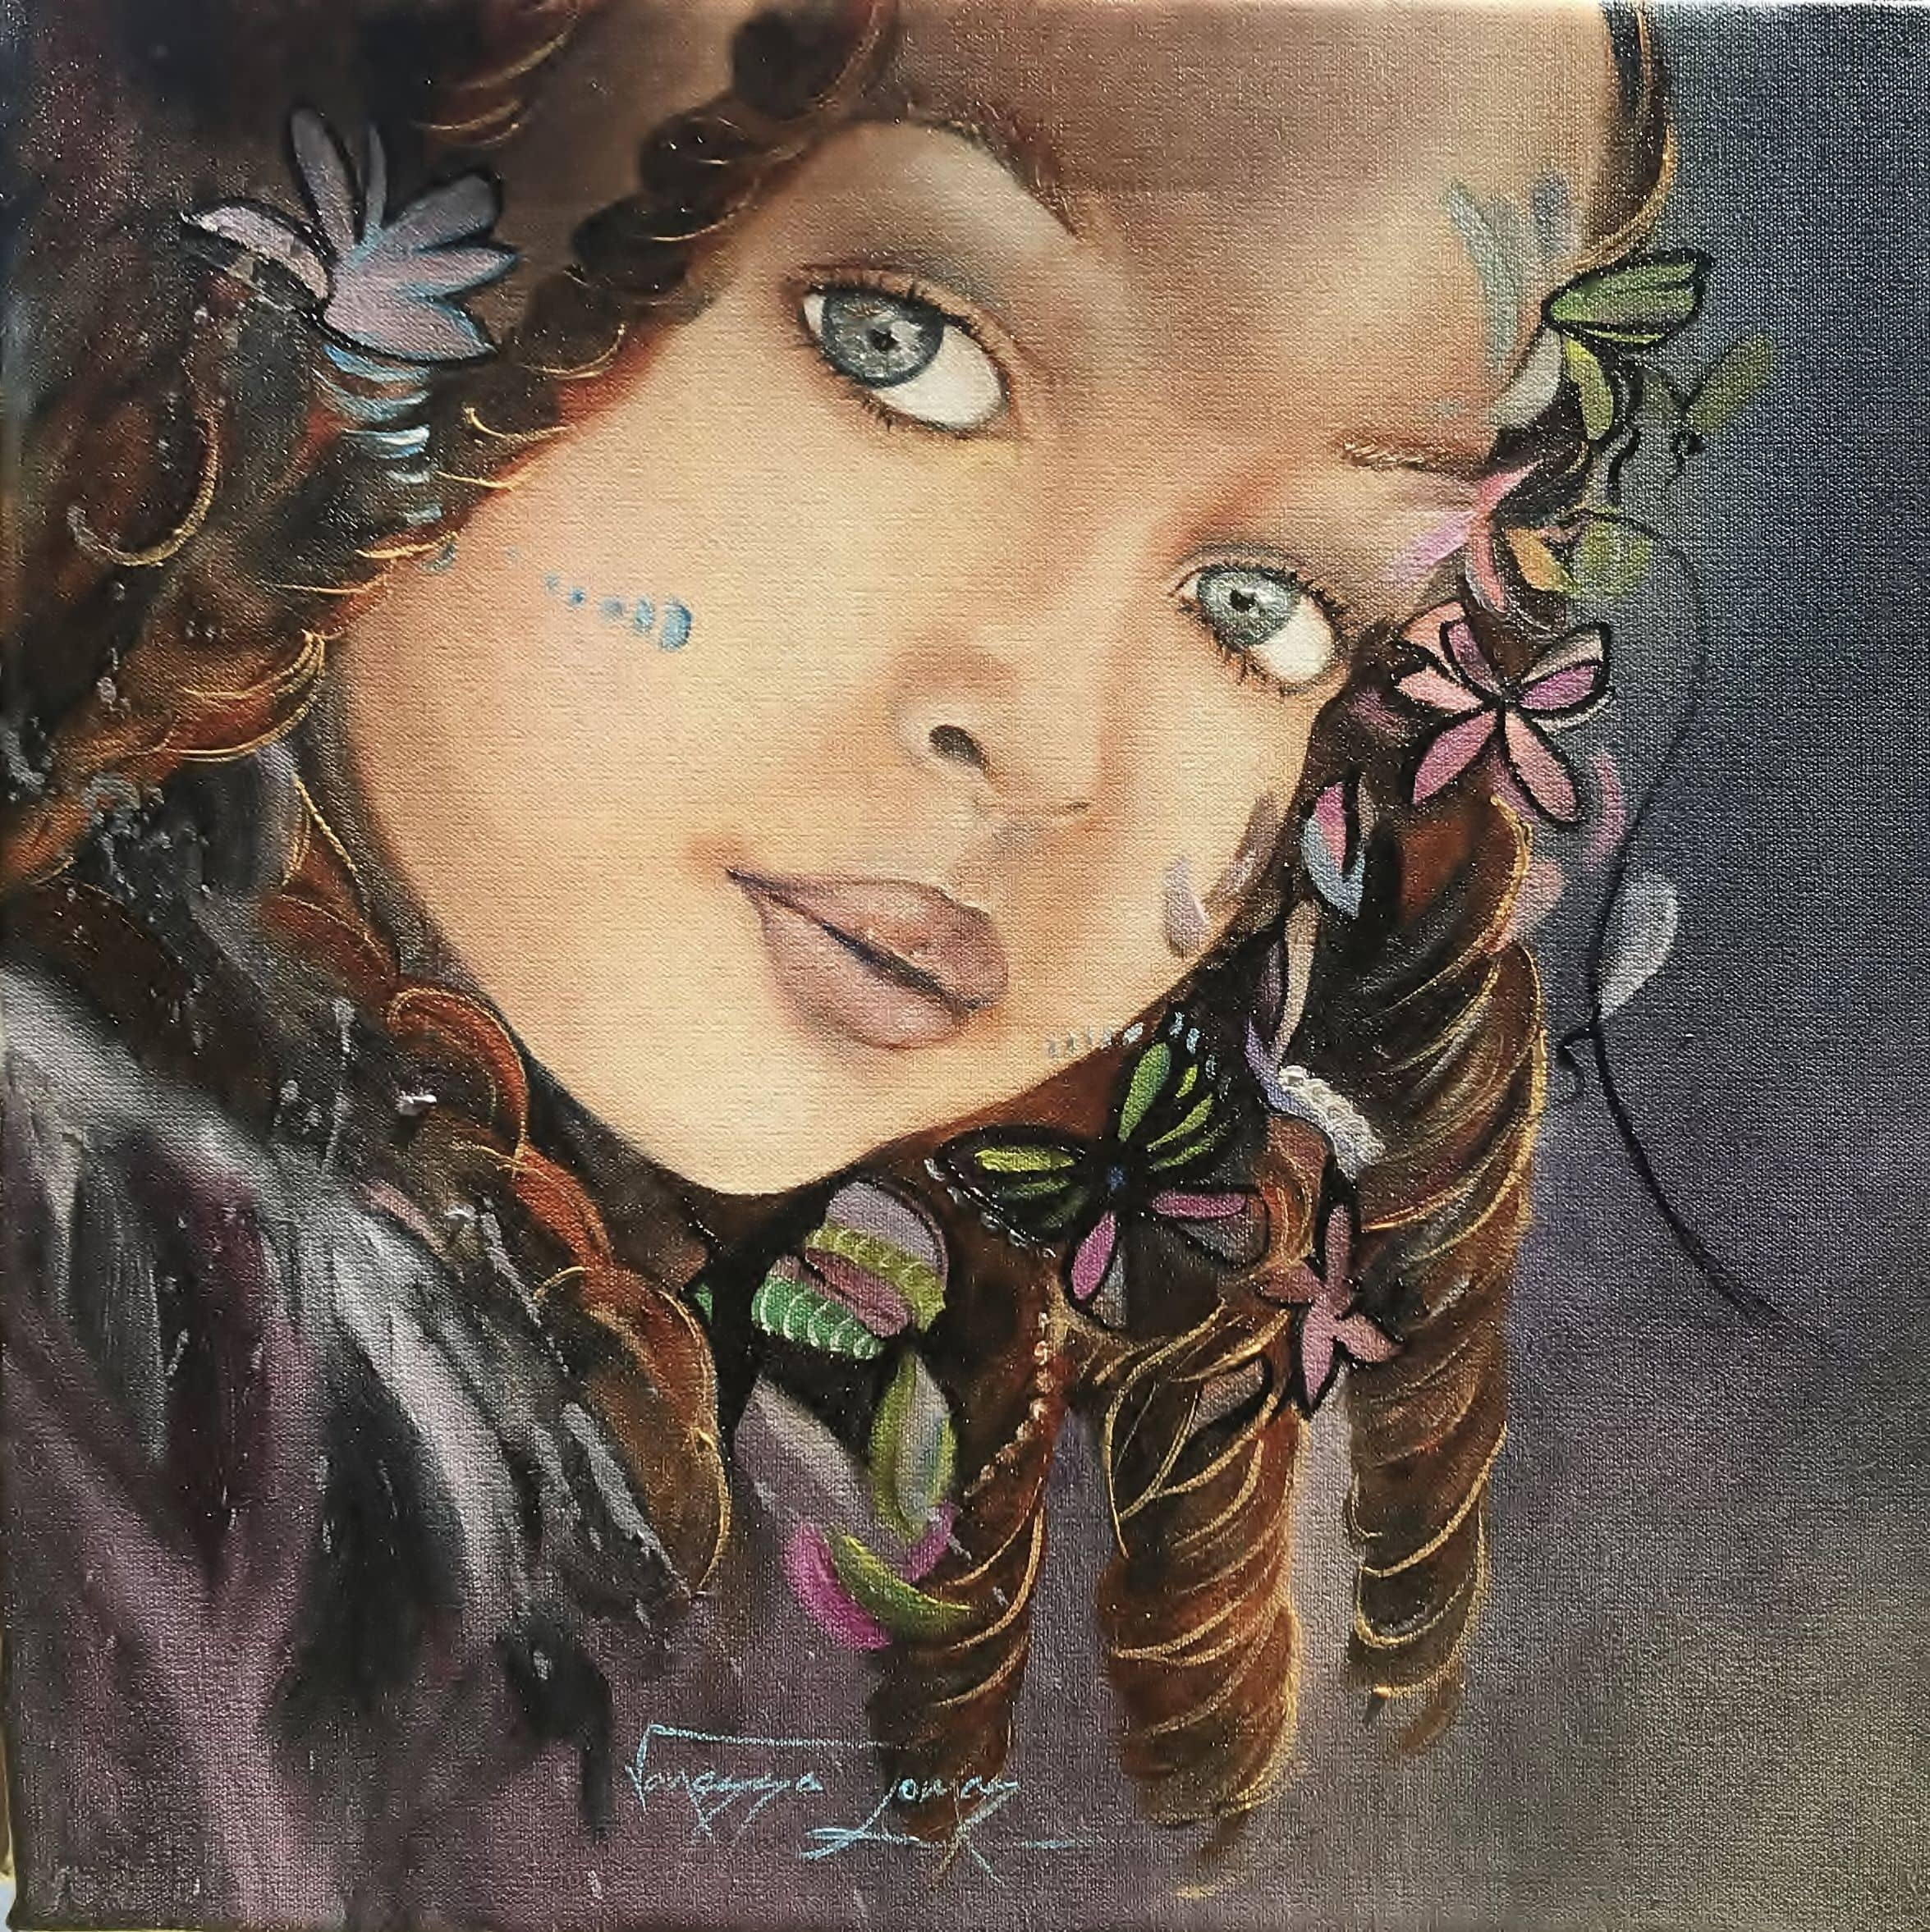 <span class=&#34;link fancybox-details-link&#34;><a href=&#34;/artists/77-vanessa-lomas/works/3095-vanessa-lomas-the-forest-child-2018/&#34;>View Detail Page</a></span><div class=&#34;artist&#34;><strong>Vanessa Lomas</strong></div> <div class=&#34;title&#34;><em>The Forest Child</em>, 2018</div> <div class=&#34;medium&#34;>Oil On Canvas</div> <div class=&#34;dimensions&#34;>40cm x 40cm</div><div class=&#34;price&#34;>R3,500.00</div>